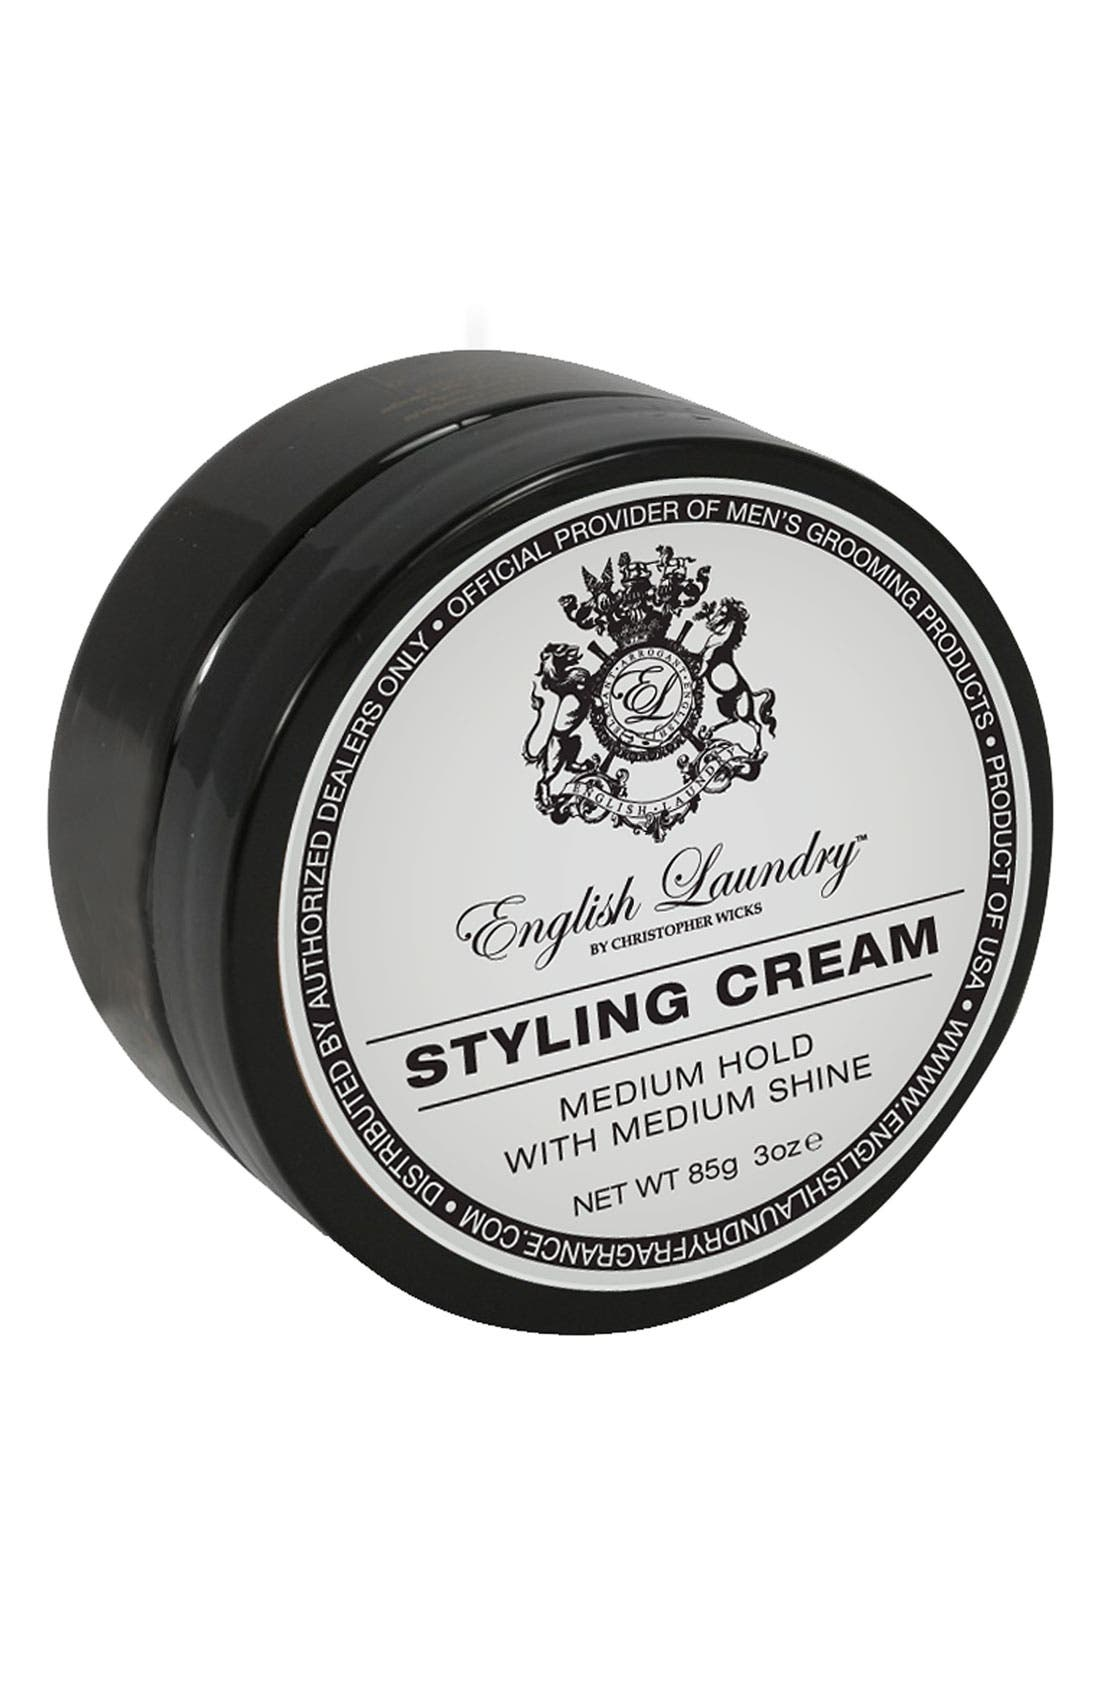 English Laundry Styling Cream